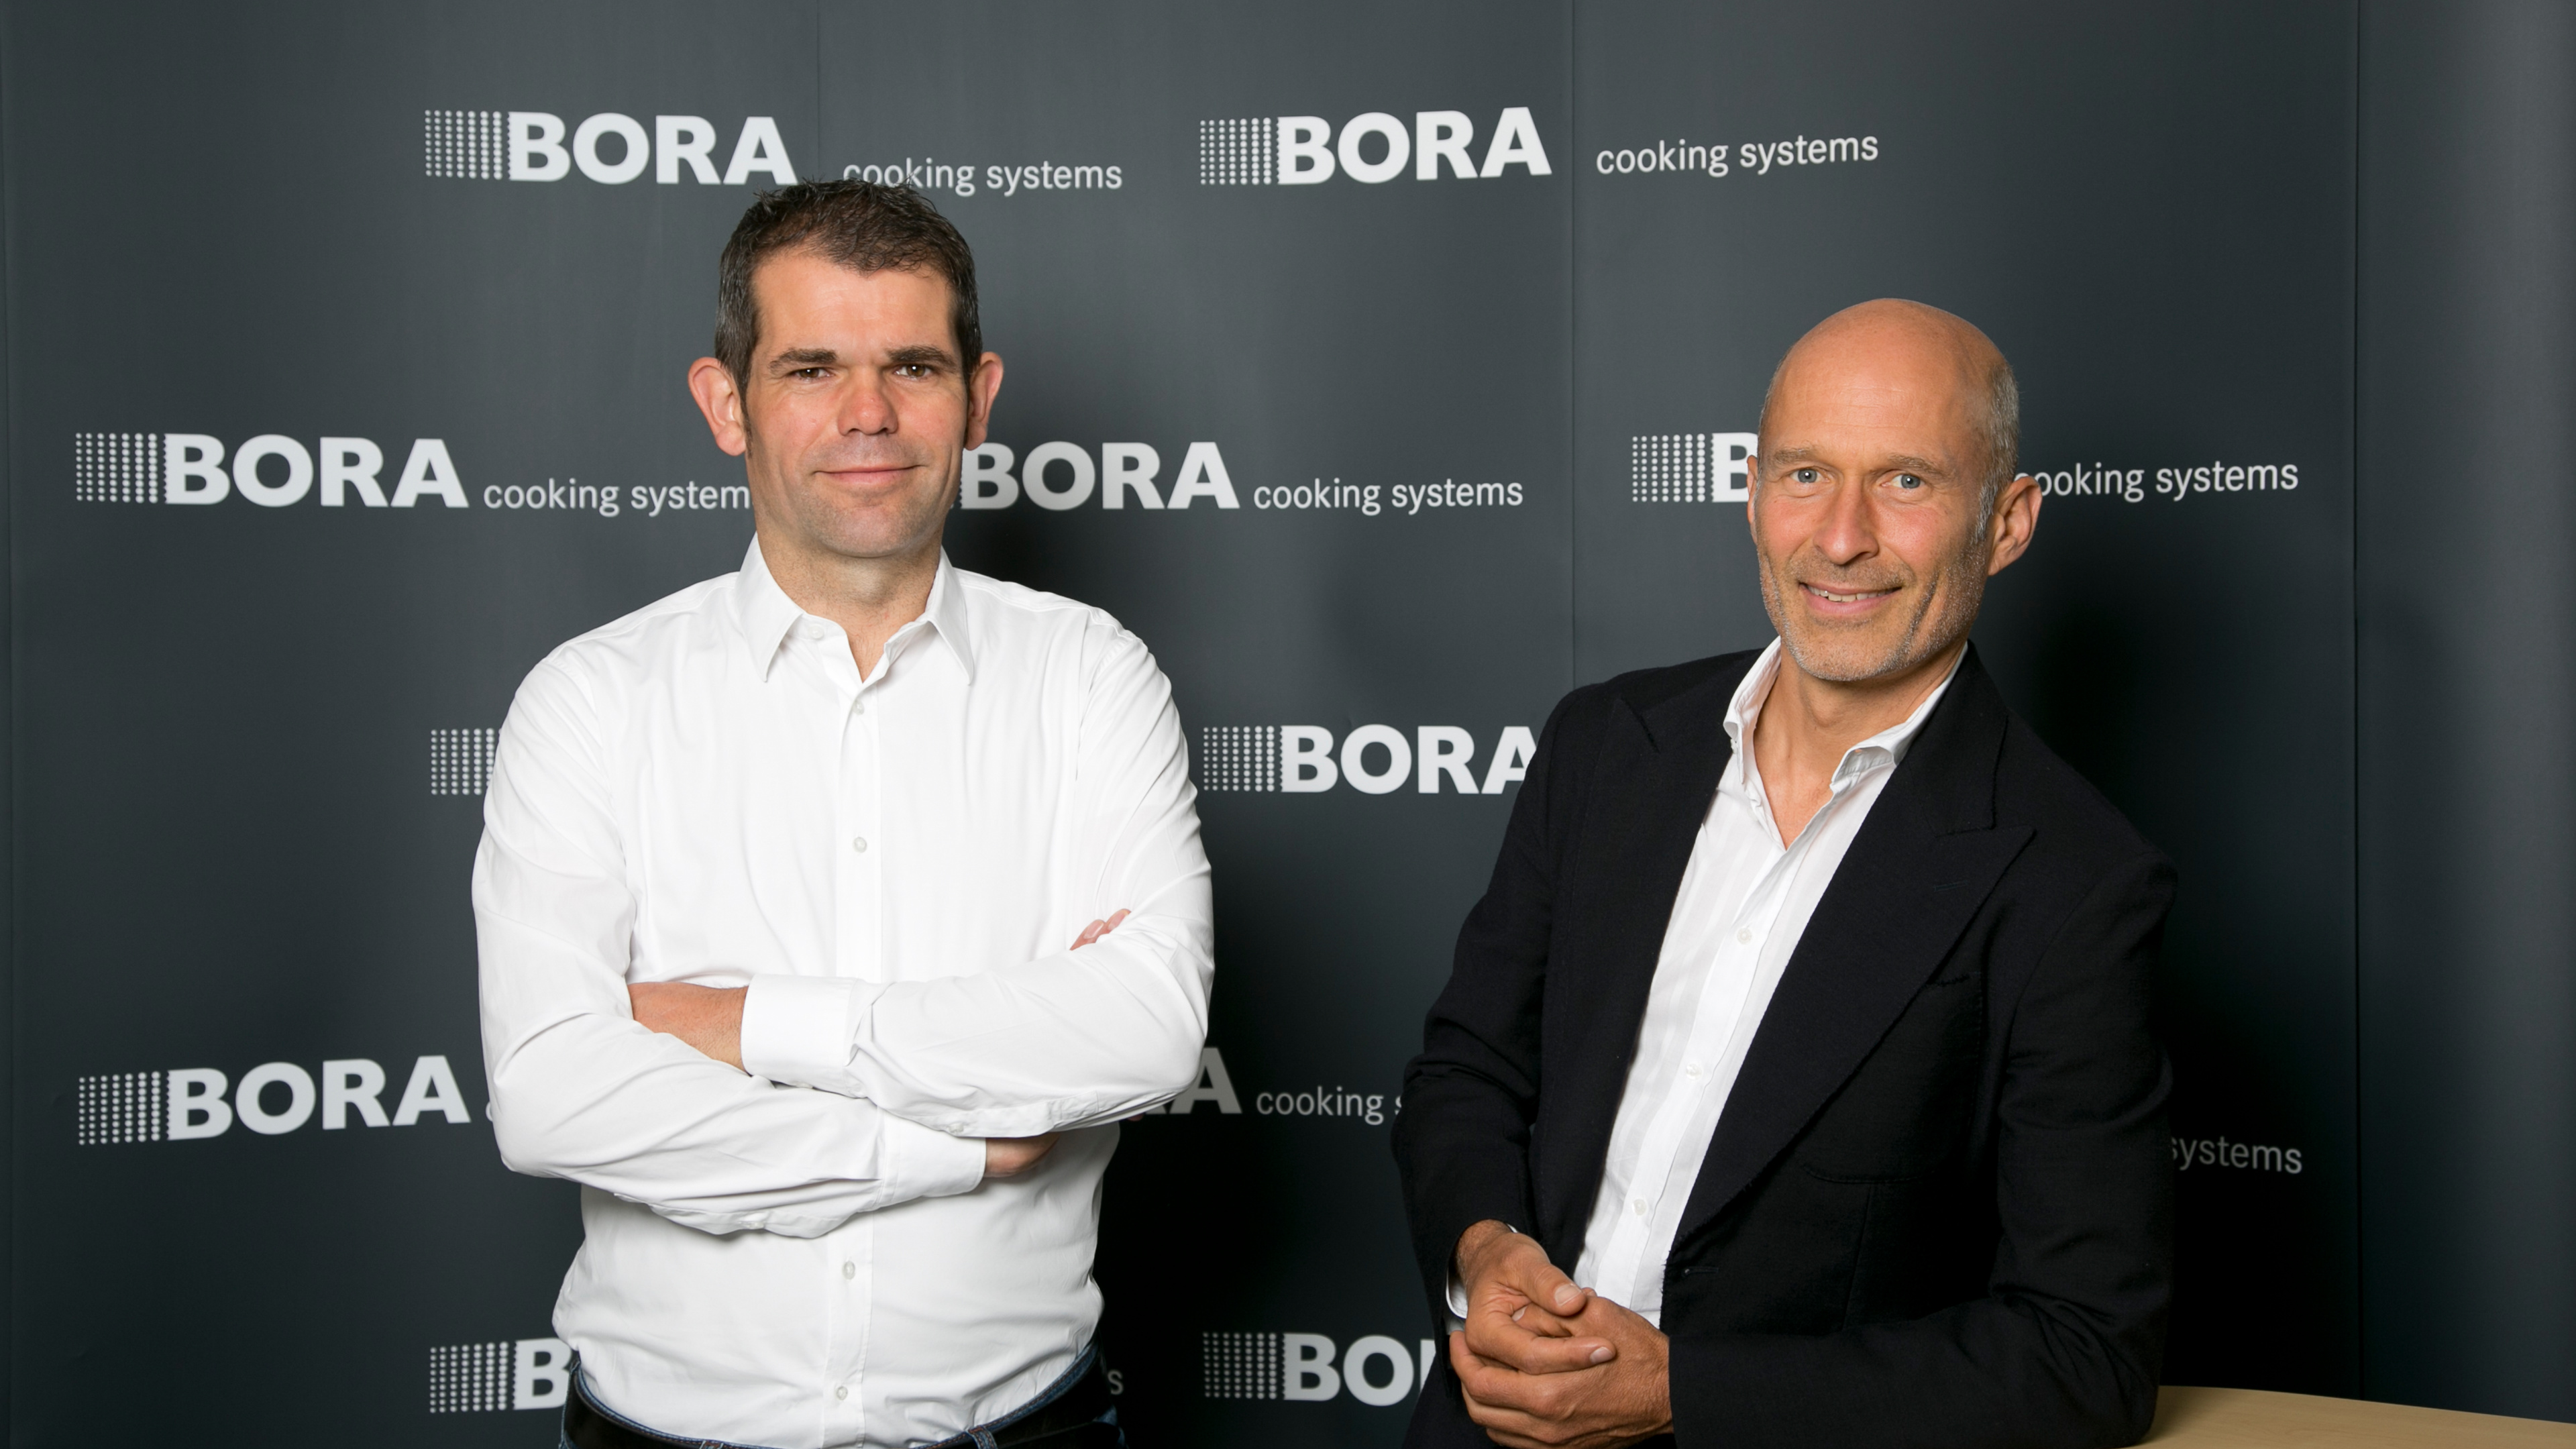 12_BORA neuer Sponsor im internationalen Radsport_2014 - 07 Juli.jpg